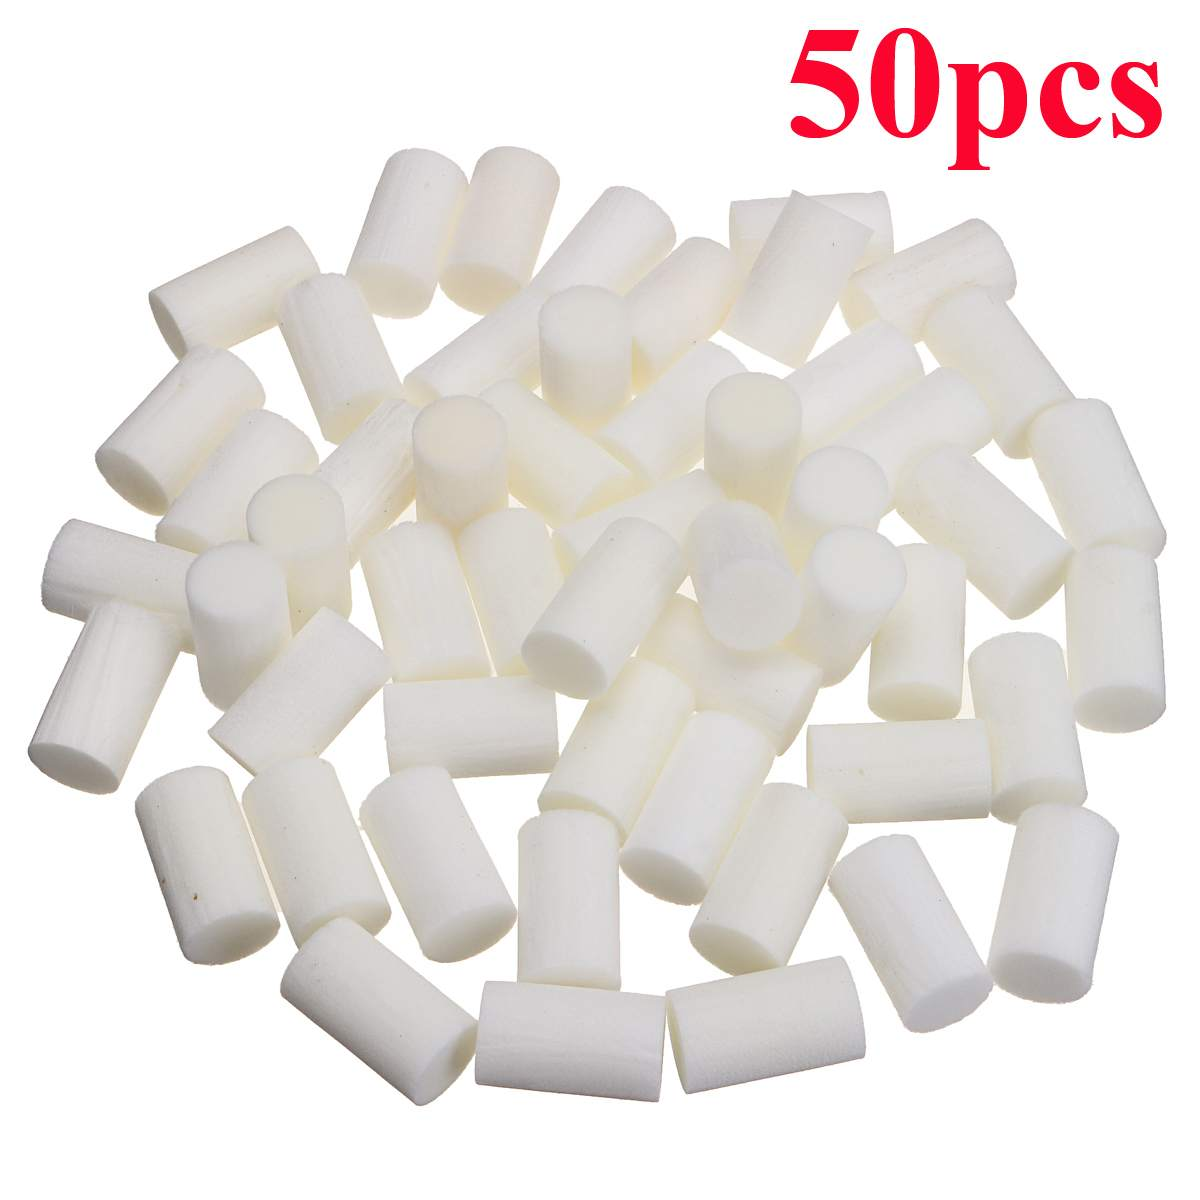 new-50pcs-high-pressure-pump-filter-element-refill-30mpa-35-20mm-white-fiber-cotton-filters-for-air-compressor-system